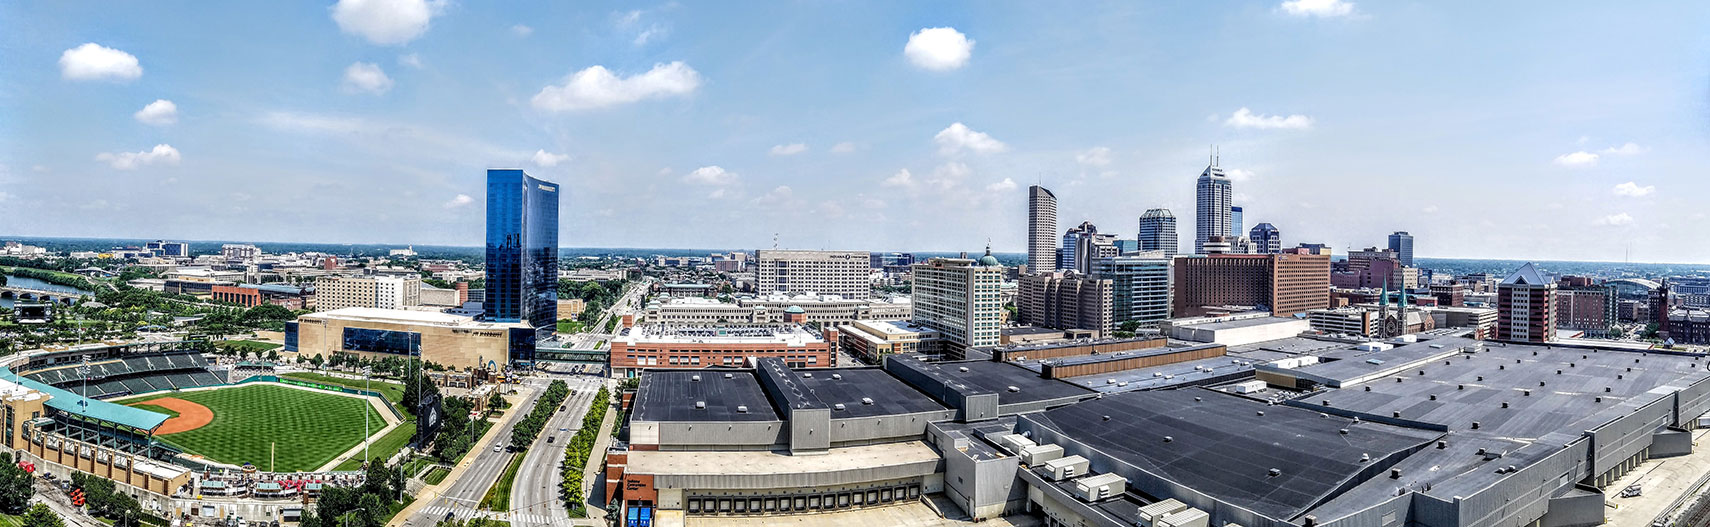 Panorama of Downtown Indianapolis with Indiana Convention Center